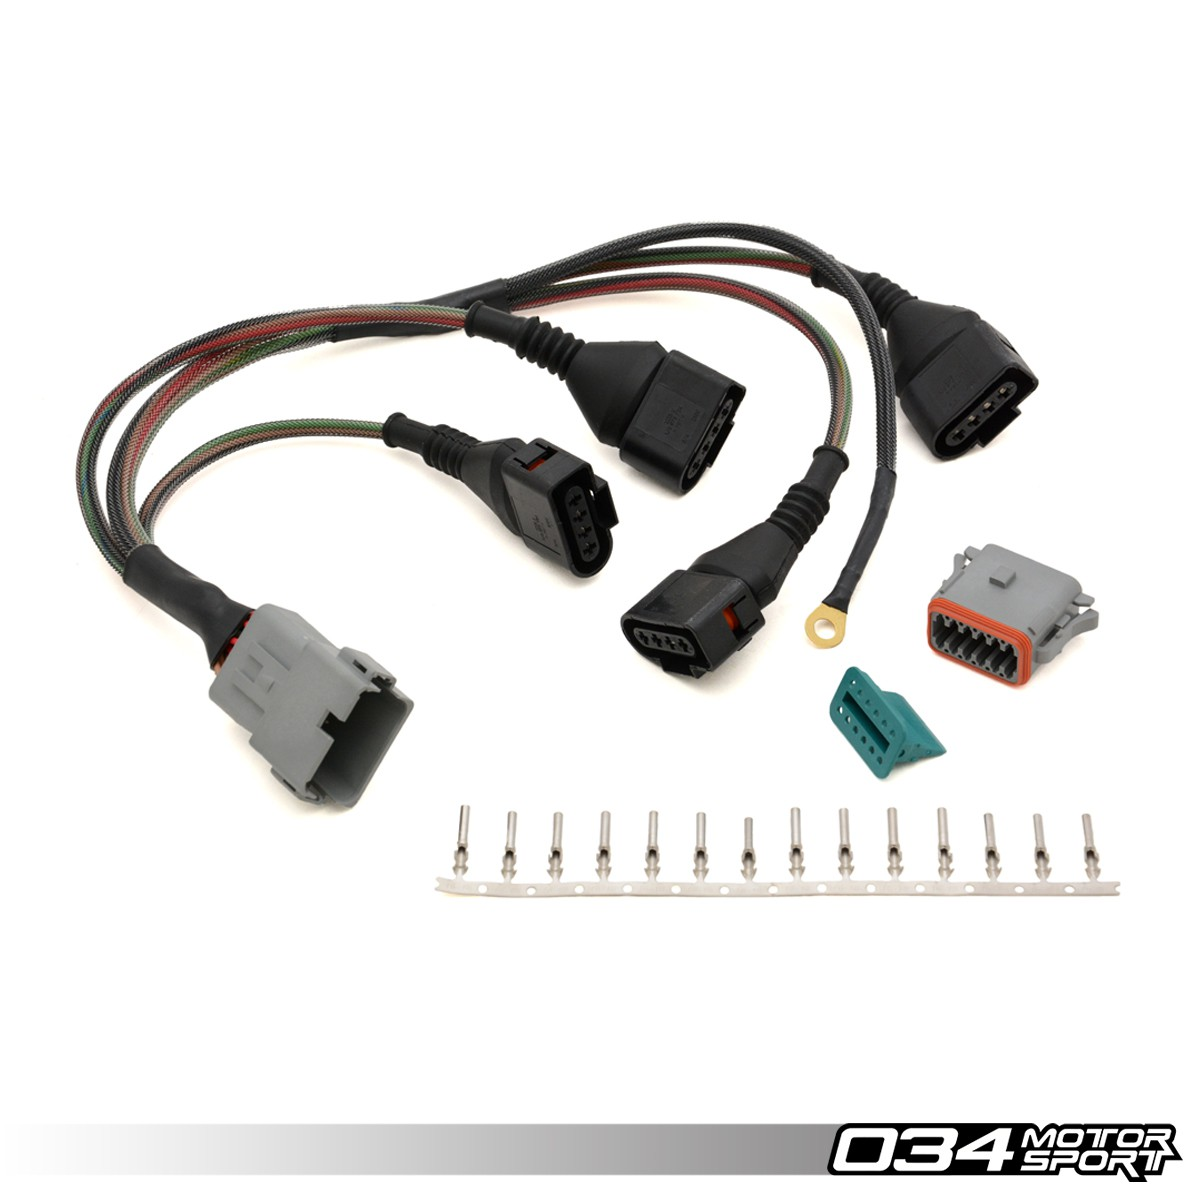 repair update harness audi volkswagen 18t with 4 wire coils 034motorsport 034 701 0004 2 repair update harness, audi volkswagen 1 8t with 4 wire coils  at nearapp.co